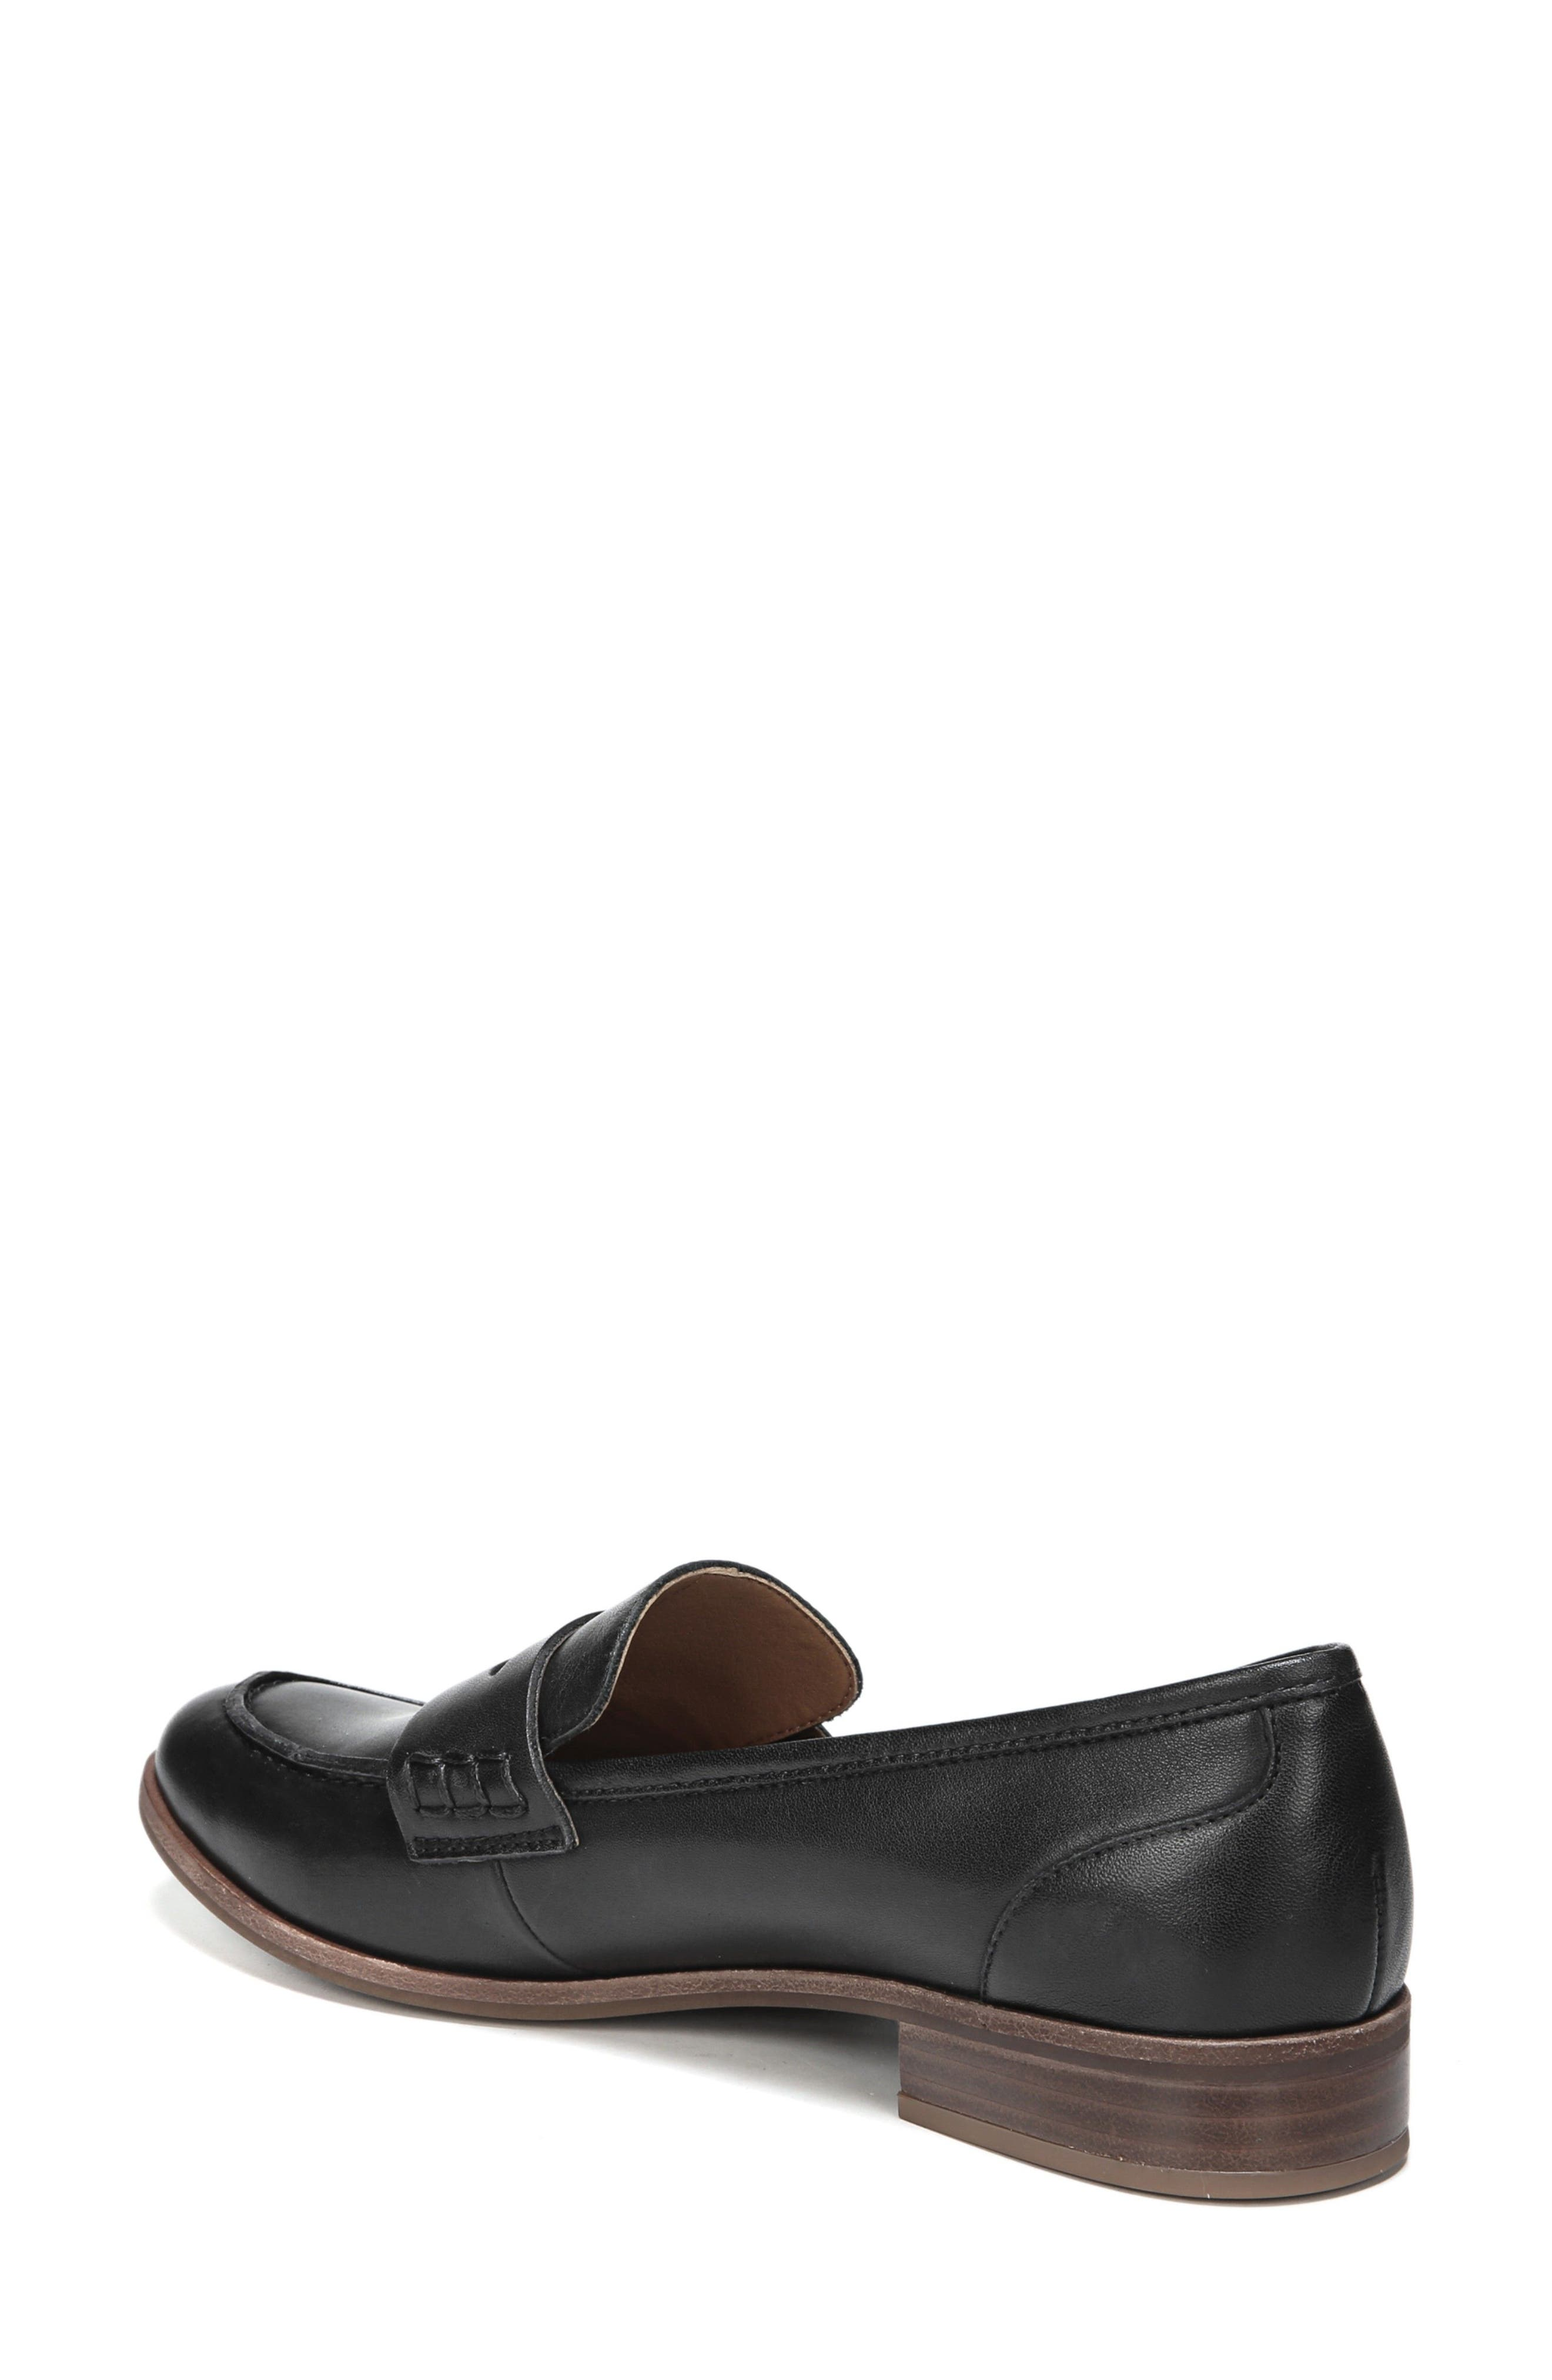 SARTO BY FRANCO SARTO, 'Jolette' Penny Loafer, Alternate thumbnail 2, color, BLACK LEATHER